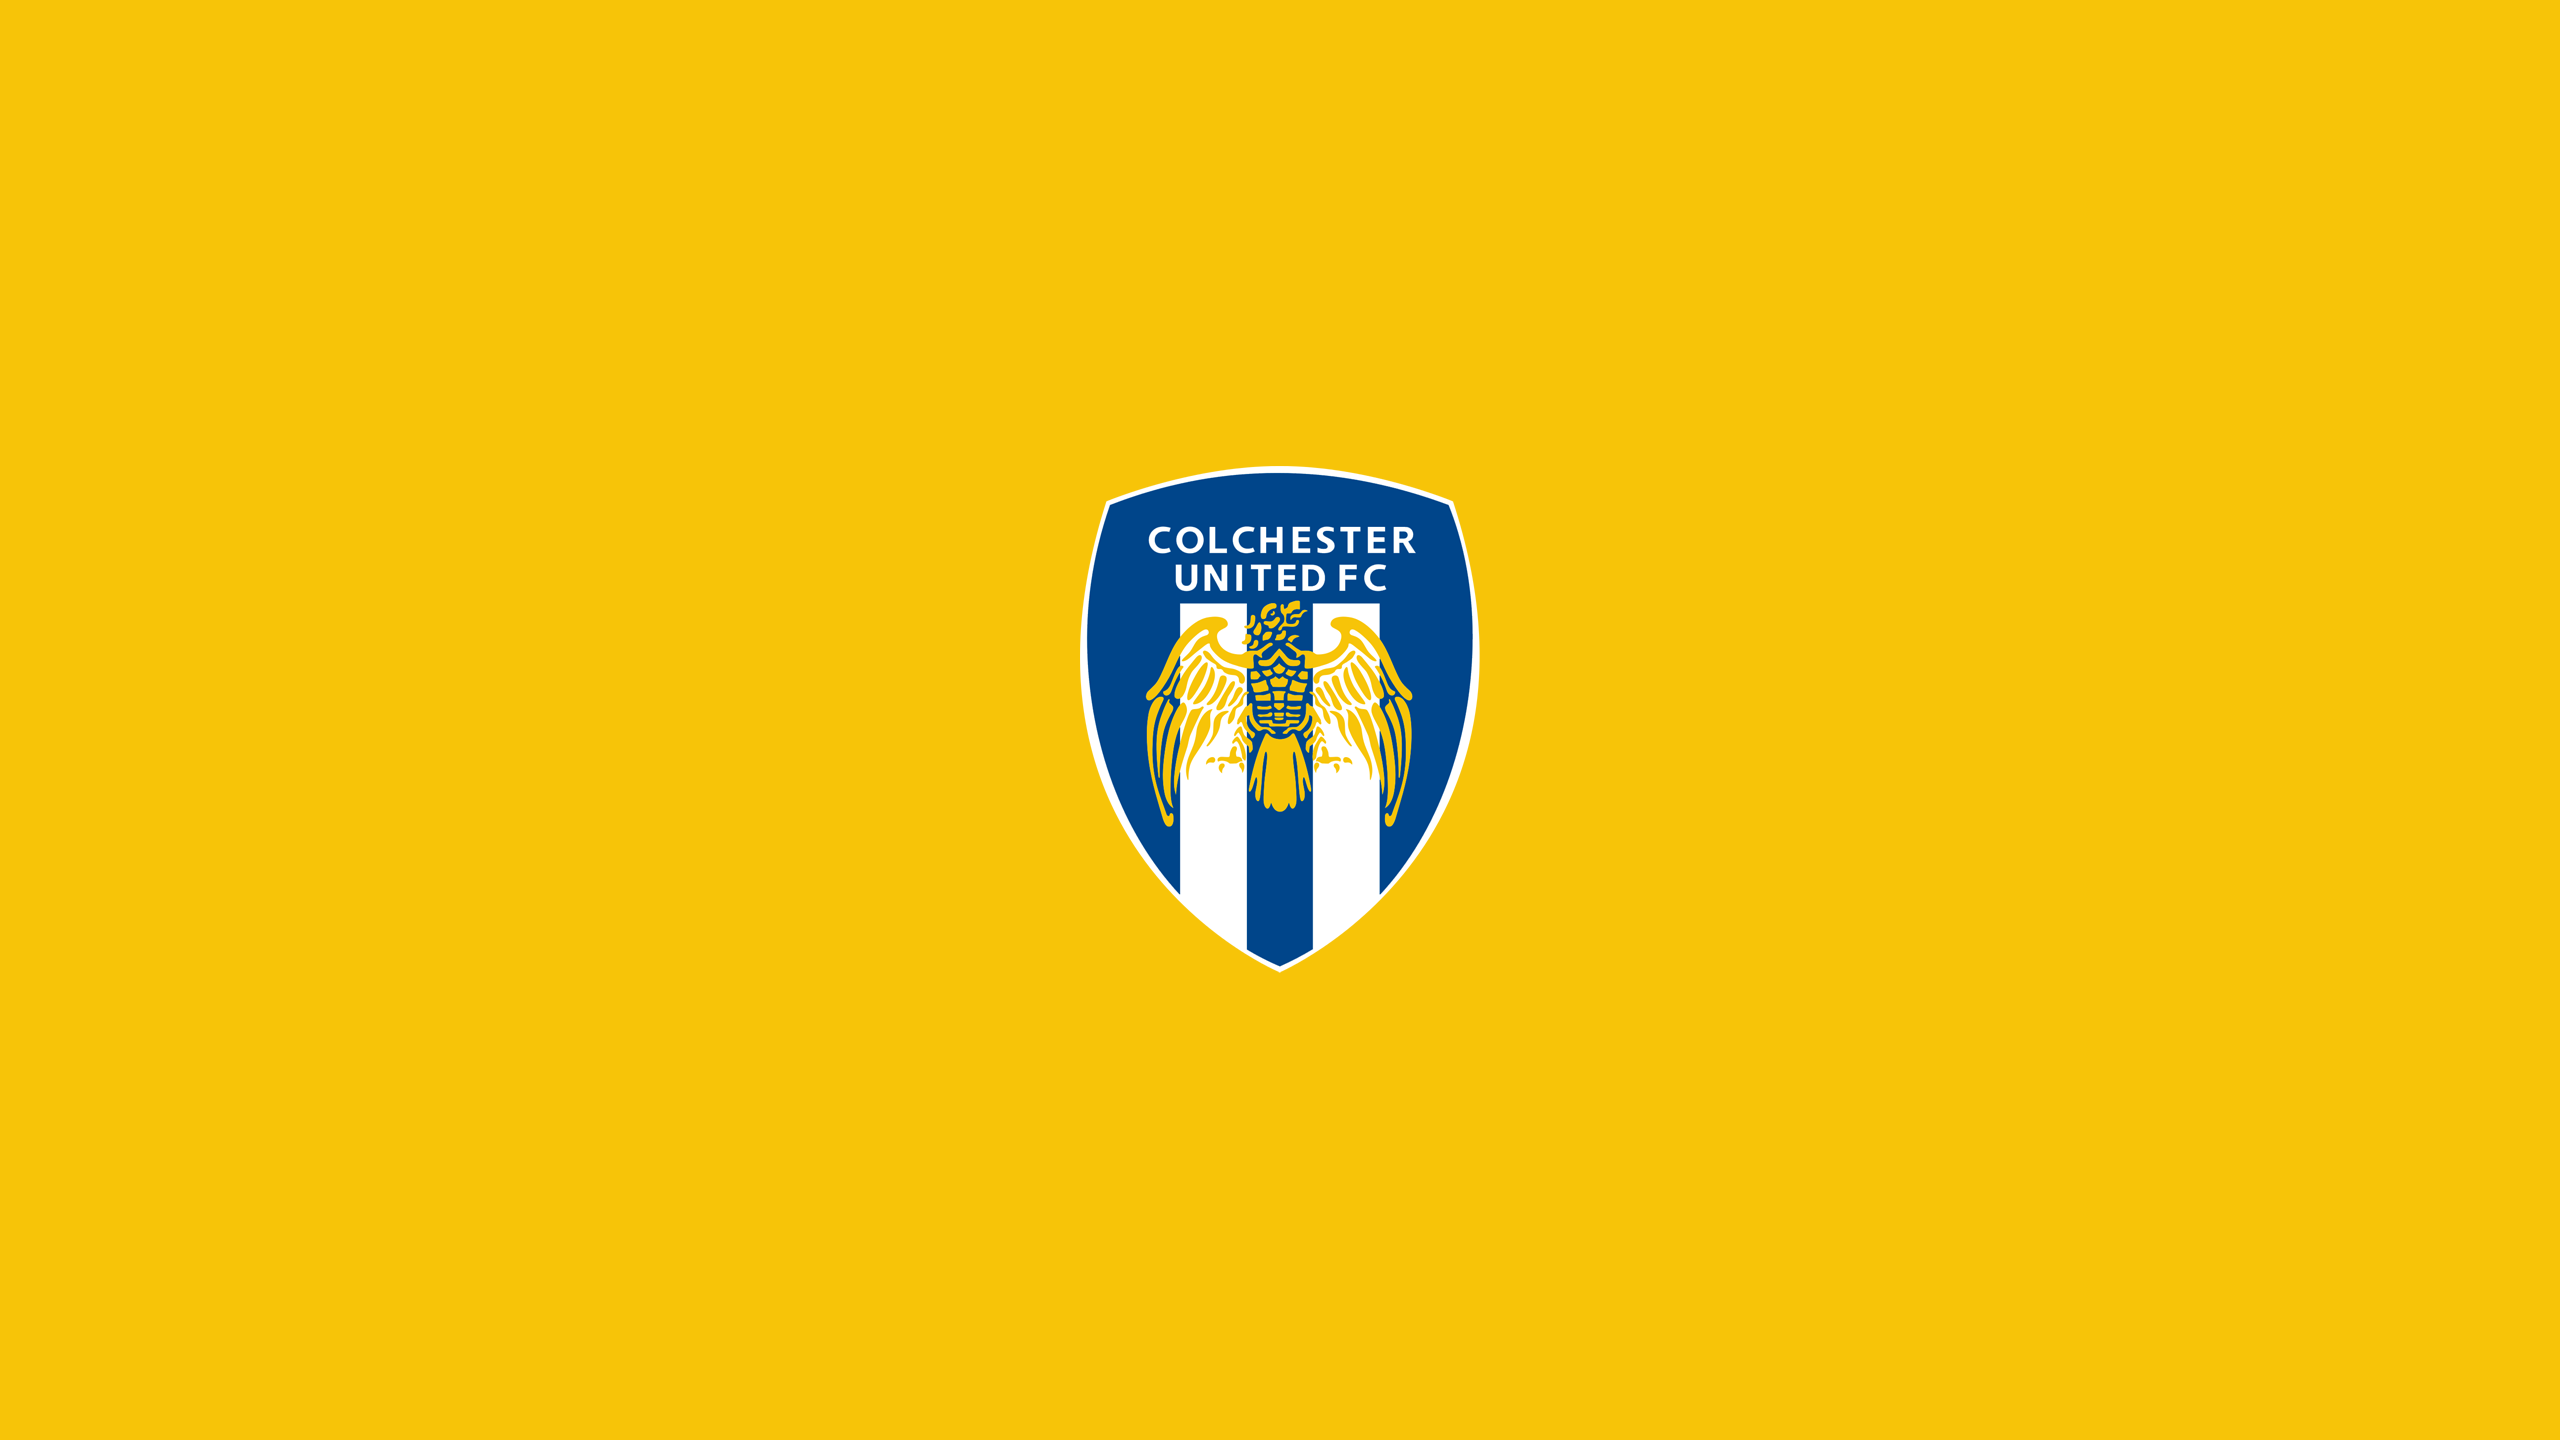 Colchester United FC (Third)